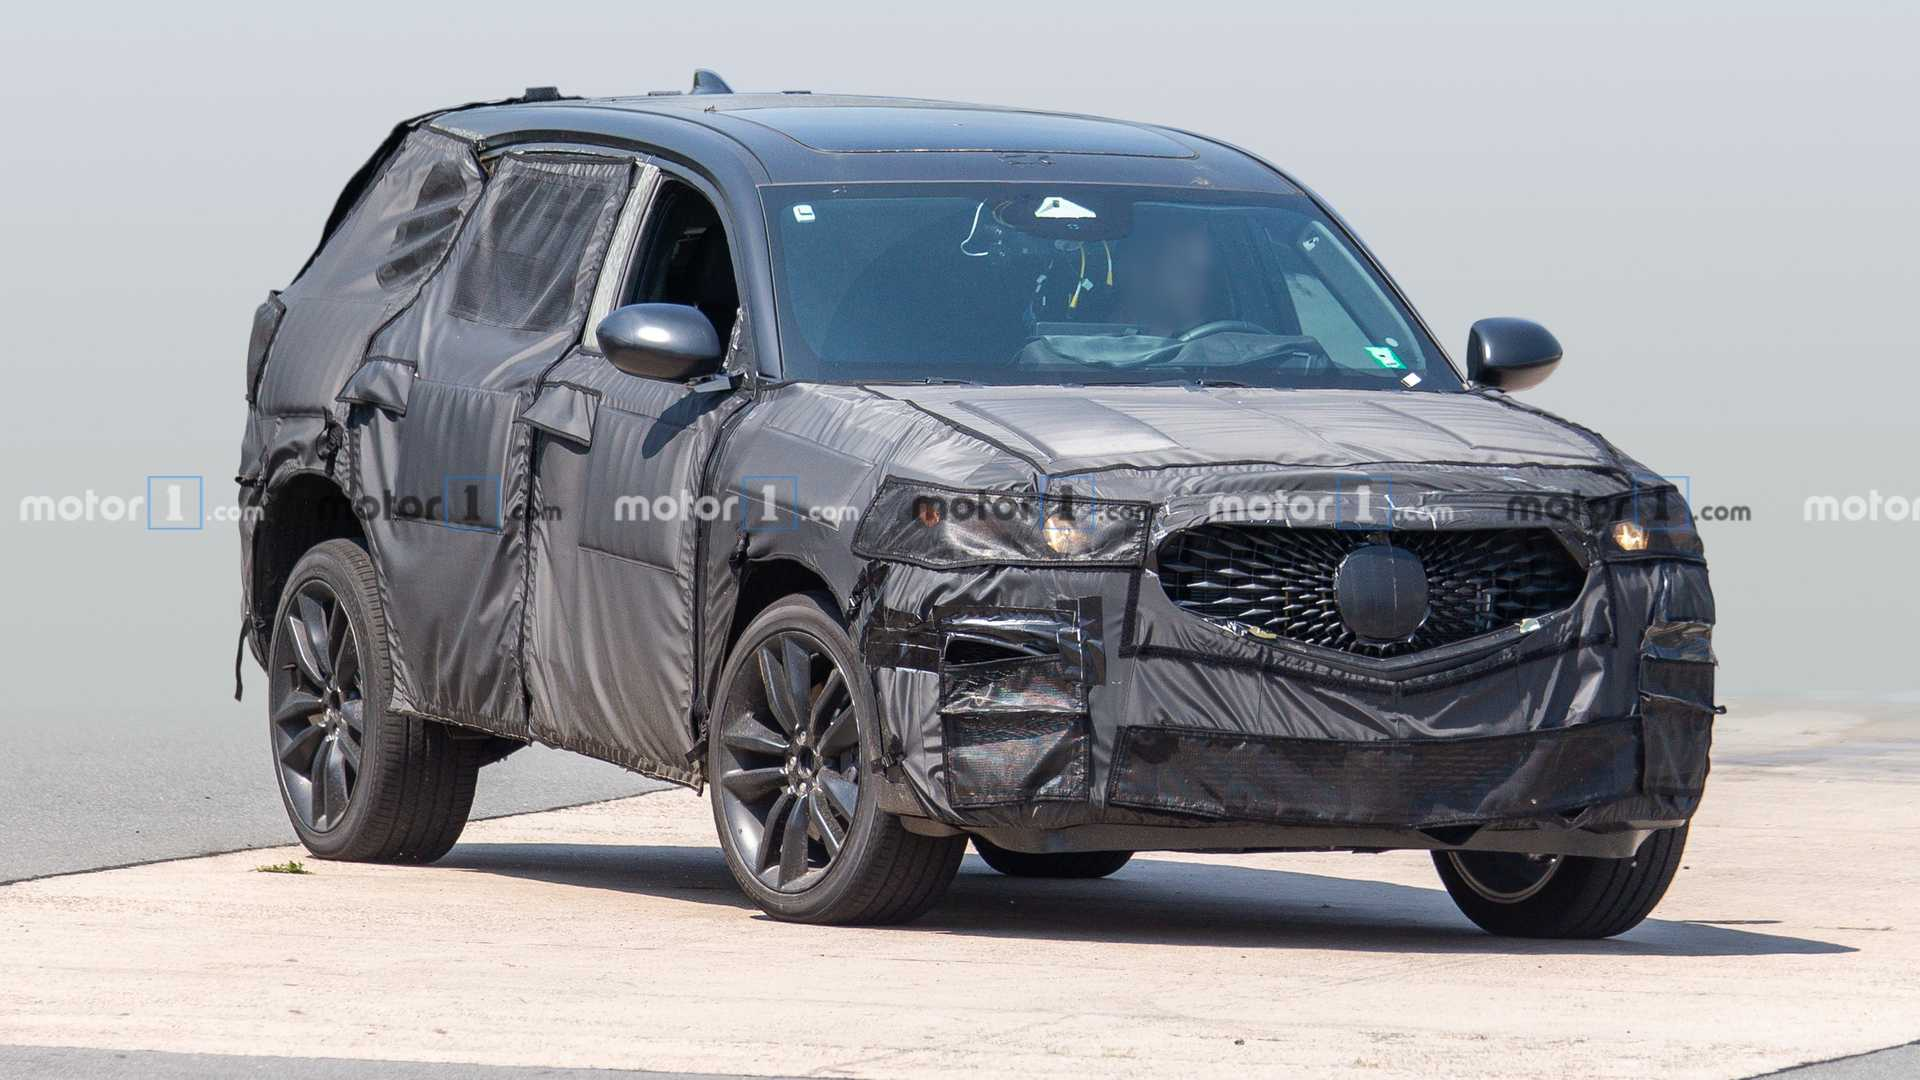 26 Concept of Acura Mdx 2020 Spy Shots New Concept with Acura Mdx 2020 Spy Shots